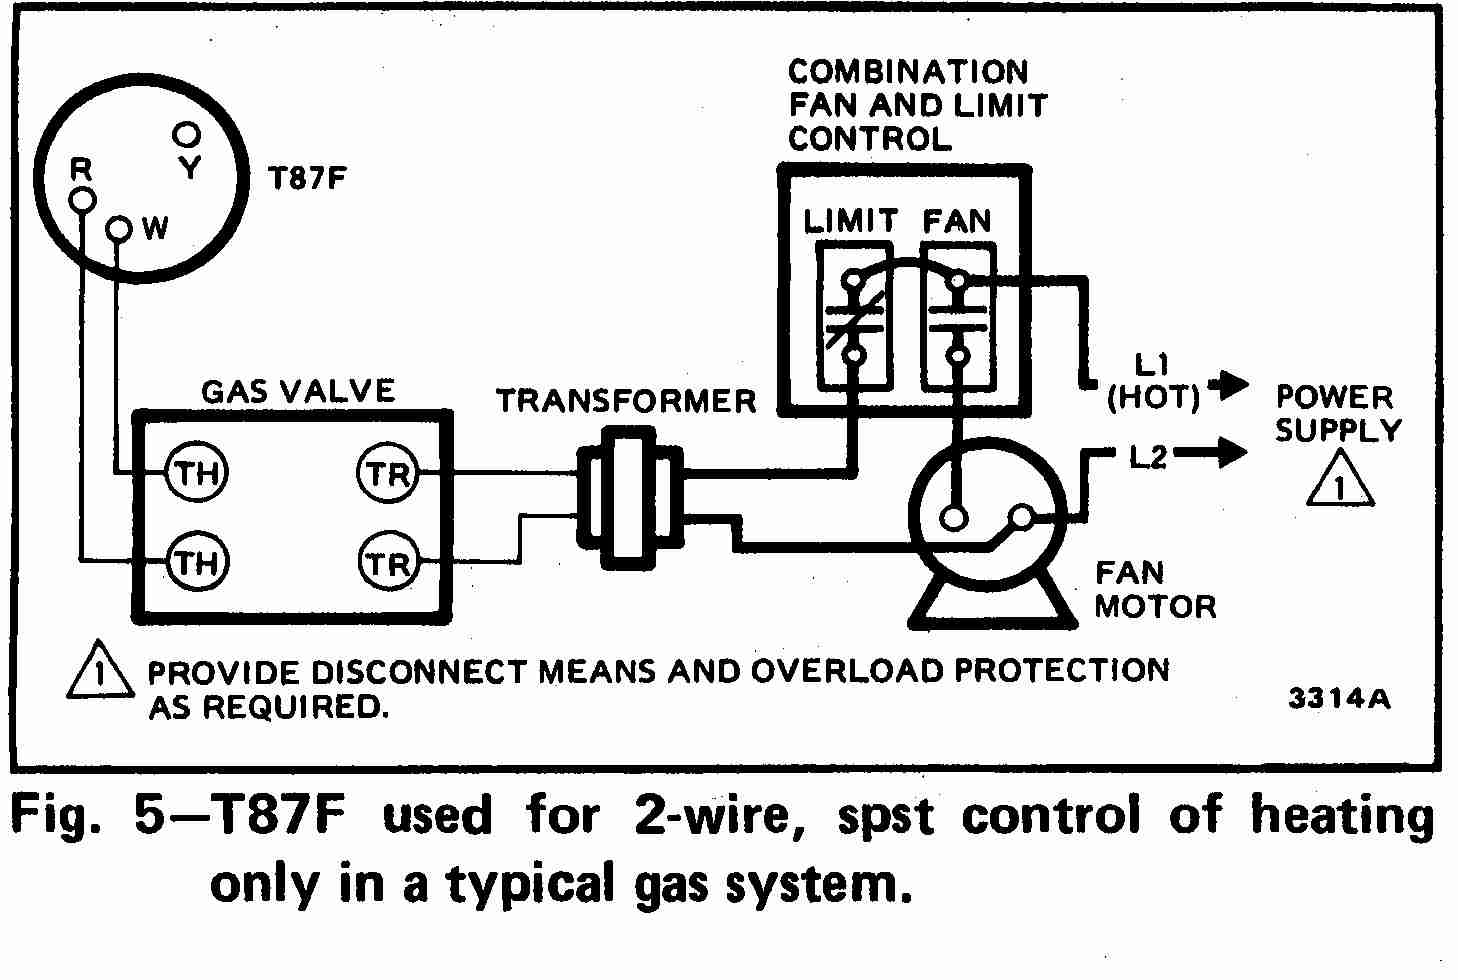 TT_T87F_0002_2Wg_DJF zone valve wiring installation & instructions guide to heating wiring diagram for control transformer at edmiracle.co